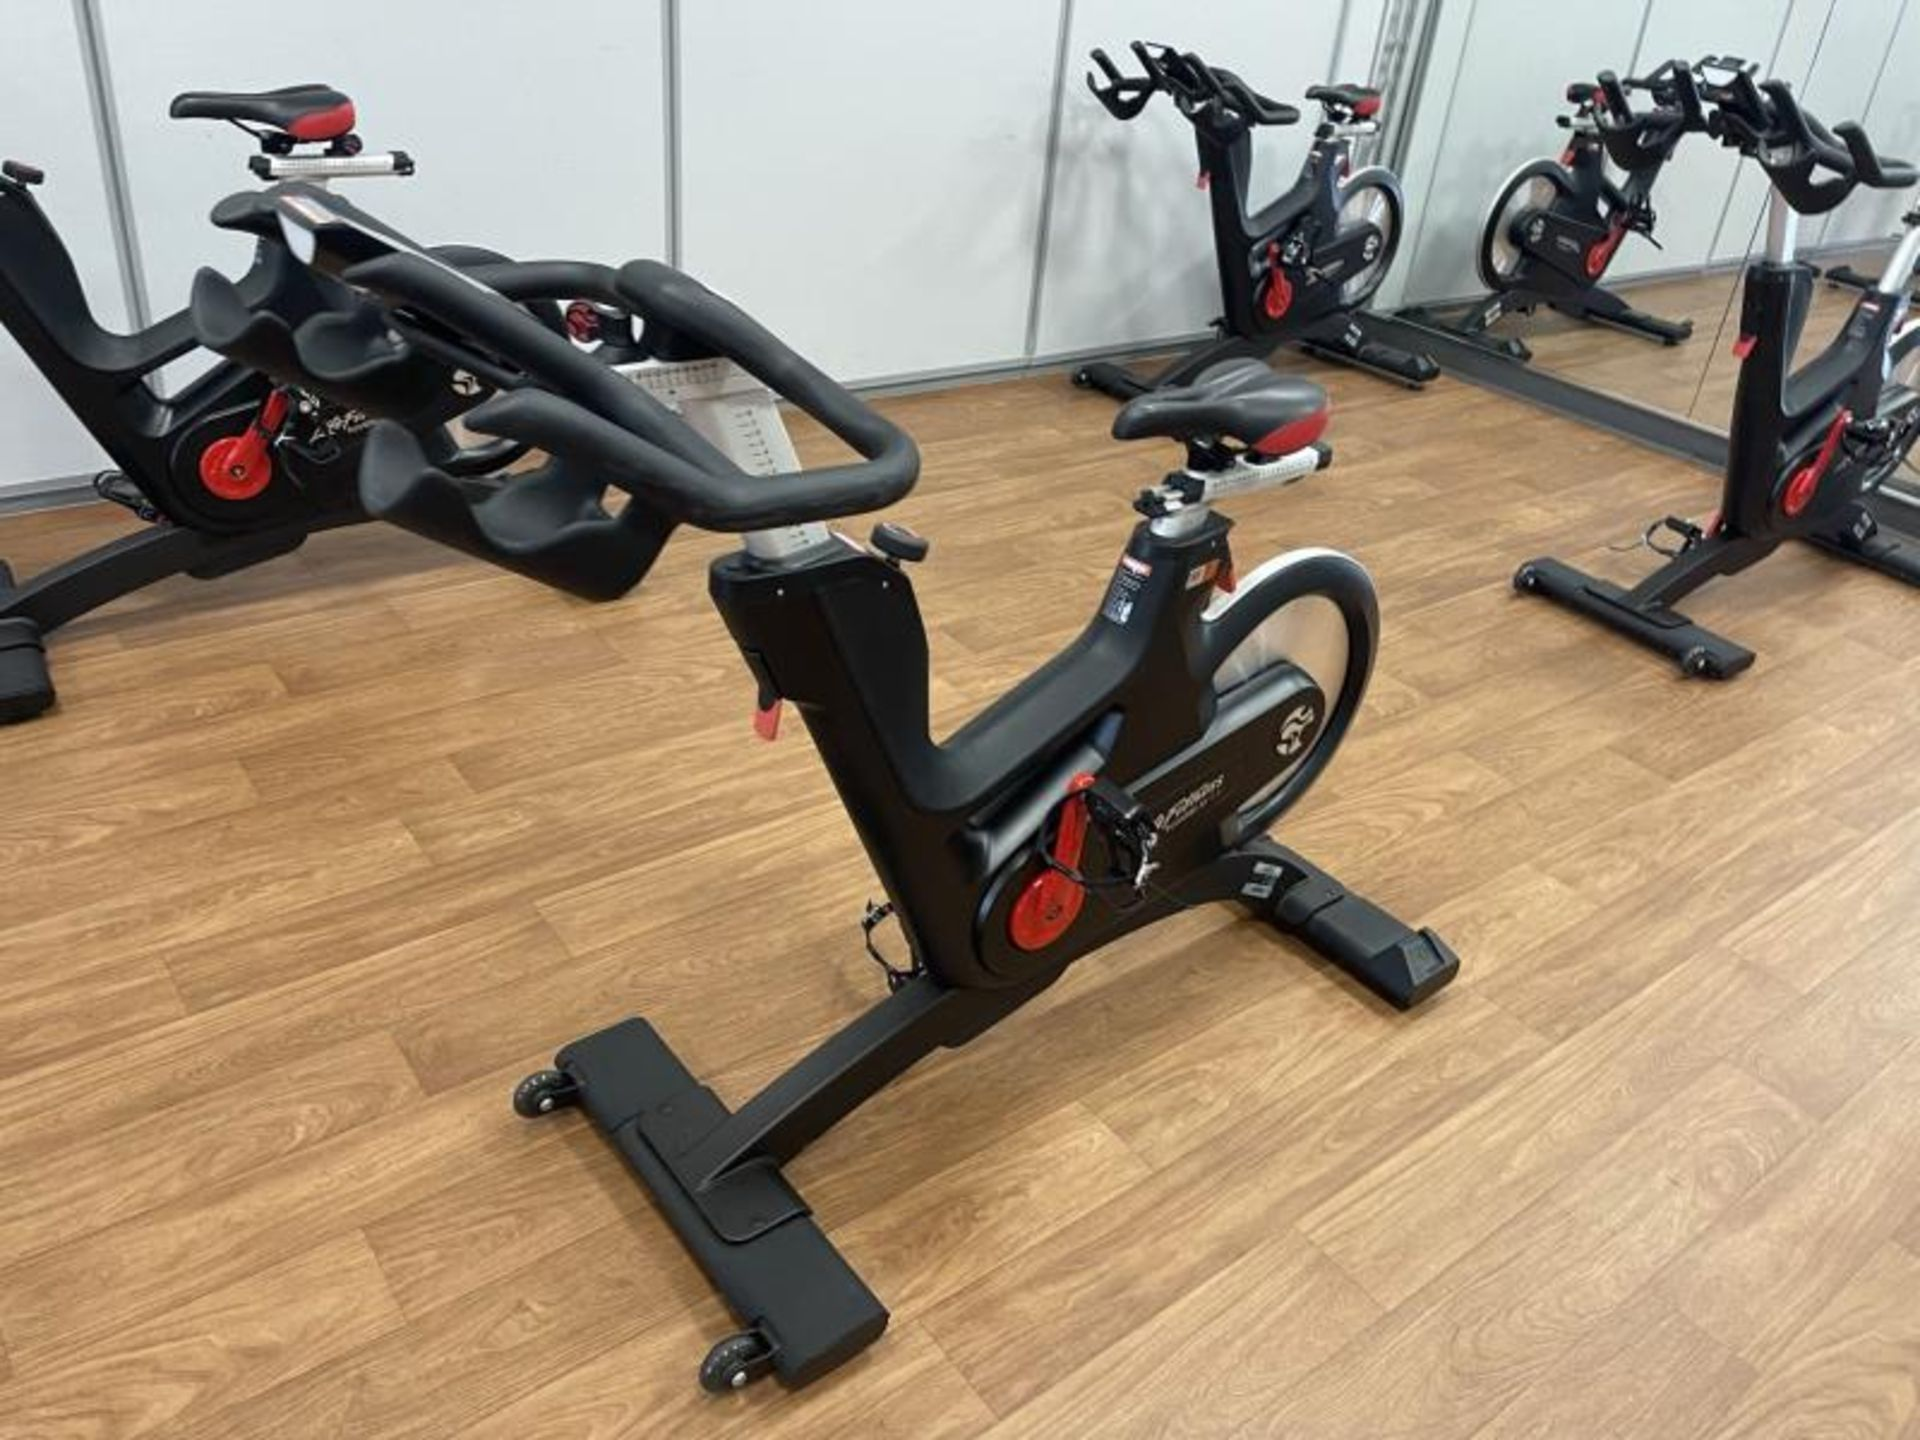 2018 Life Fitness Spin Bikes M: IC-LFIC7B2-01 - Image 2 of 3